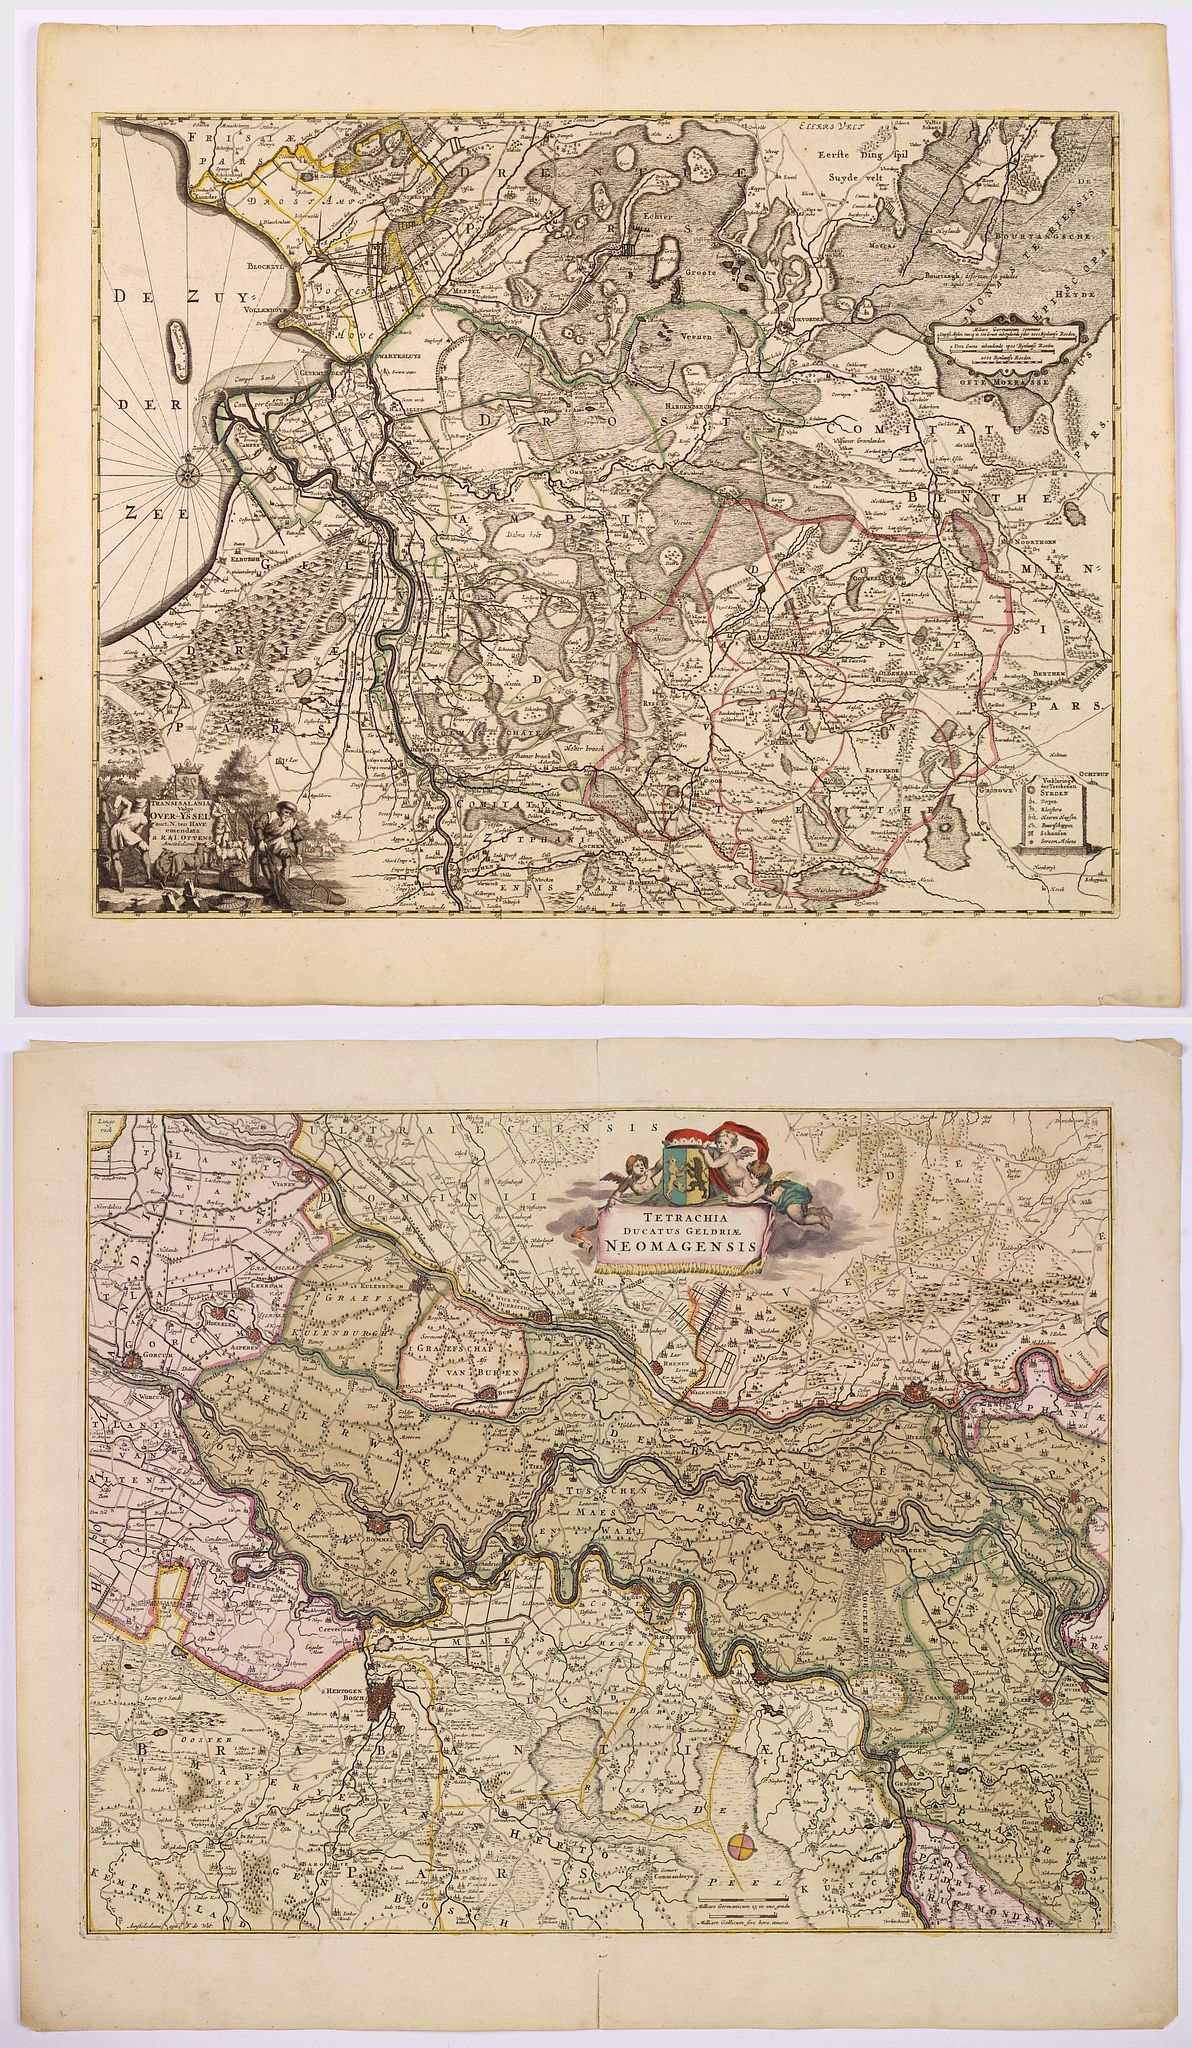 DE WIT, F. / OTTENS, R. / J., Tetrachia Ducatus Geldriae Neomagensis. / Transisalania vulgo Over-Yssel auct. N. ten Have. . . [Two maps], antique map, old maps